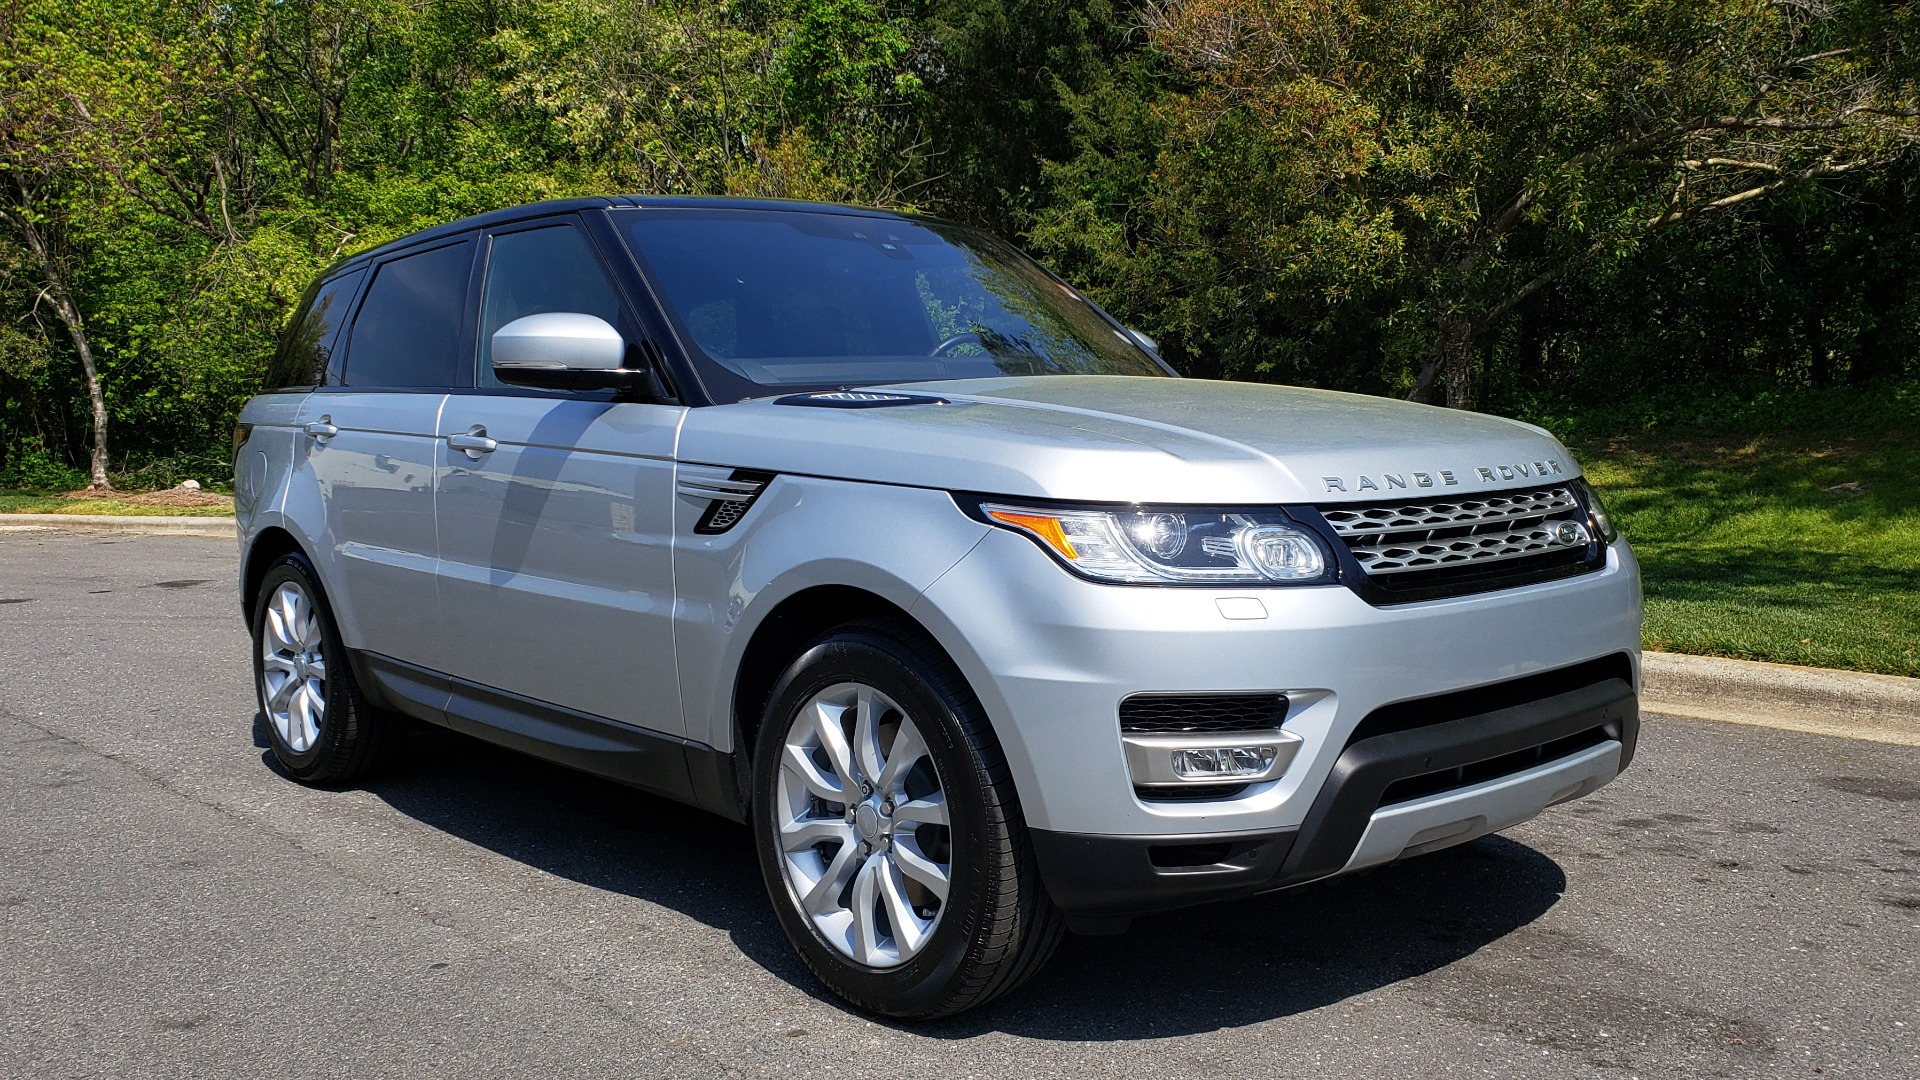 Used 2017 Land Rover RANGE ROVER SPORT HSE / SC V6 / 4X4 / NAV / PANO-ROOF / REARVIEW for sale Sold at Formula Imports in Charlotte NC 28227 4